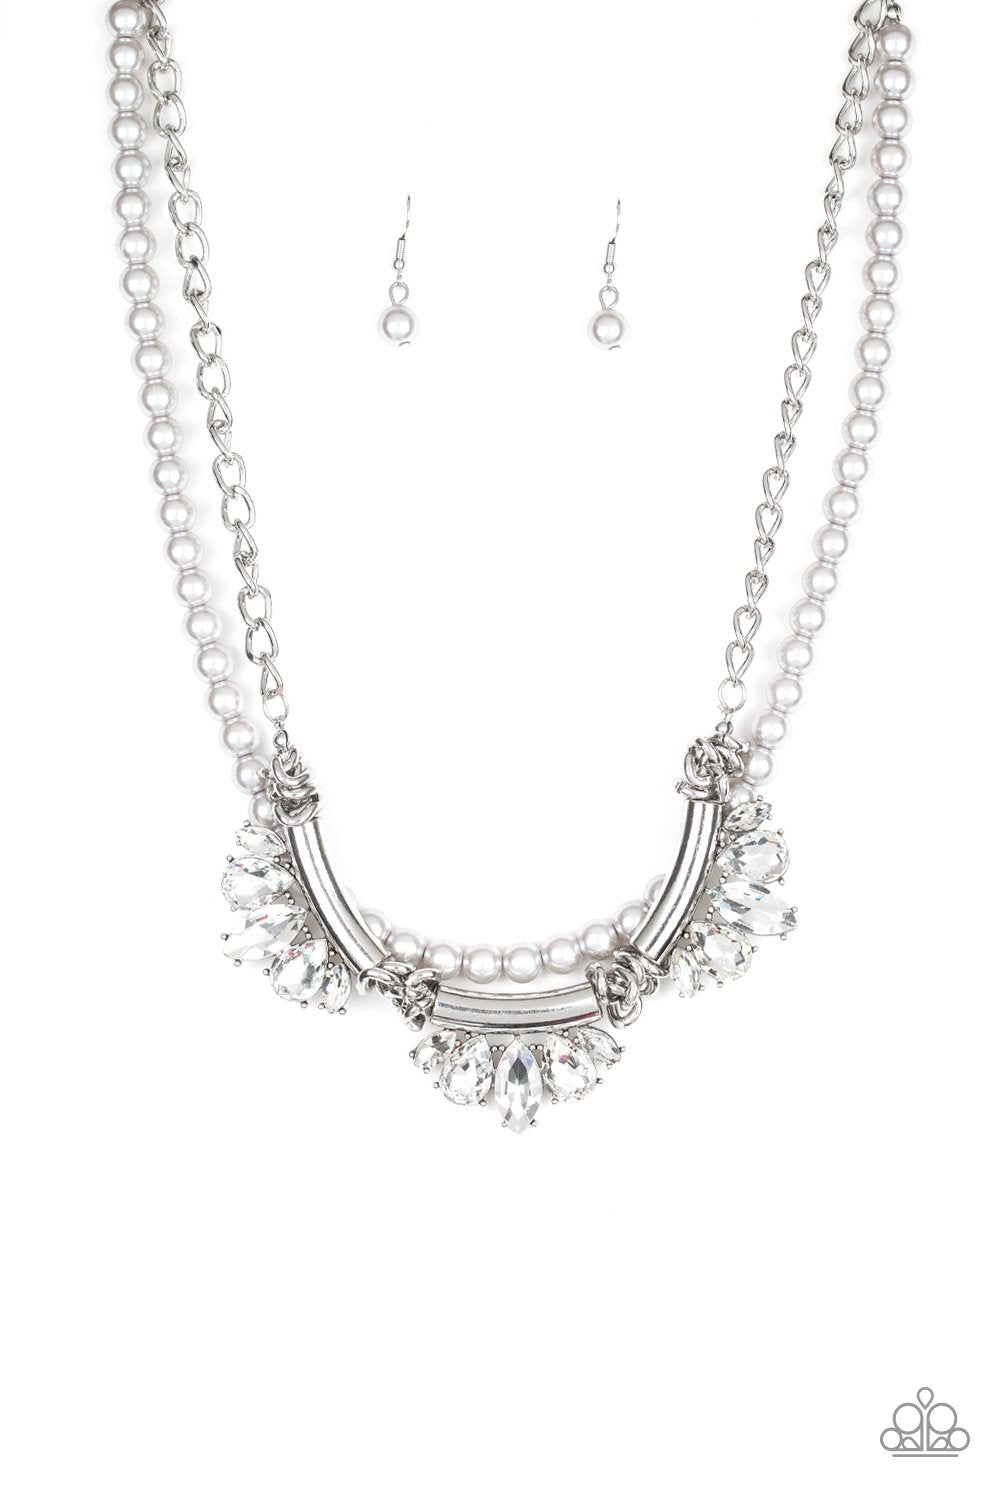 Bow Before the Queen-silver-Paparazzi necklace